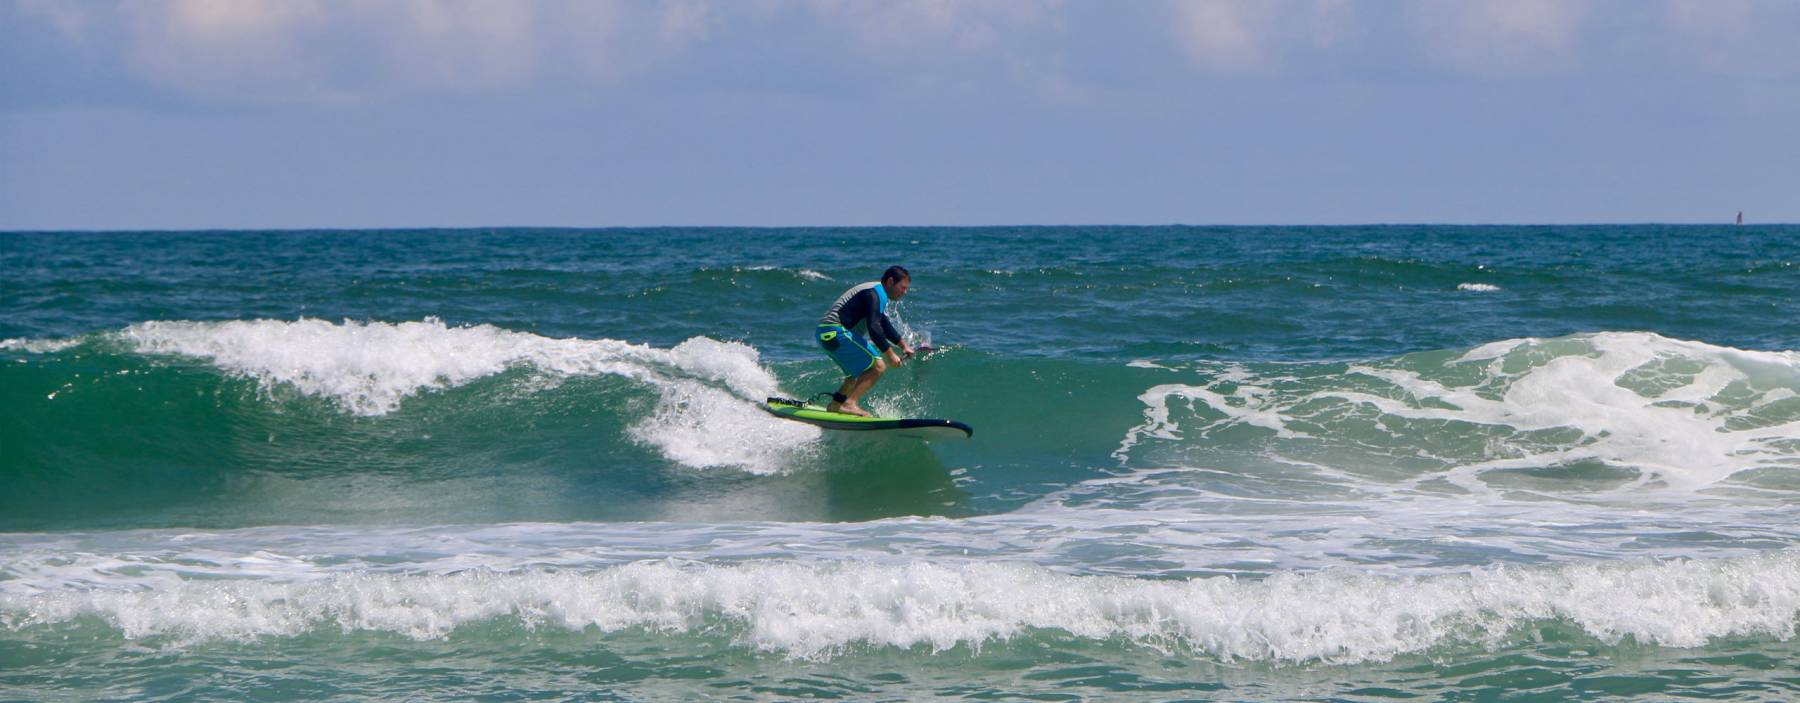 Catch a Wave on Ocracoke Island